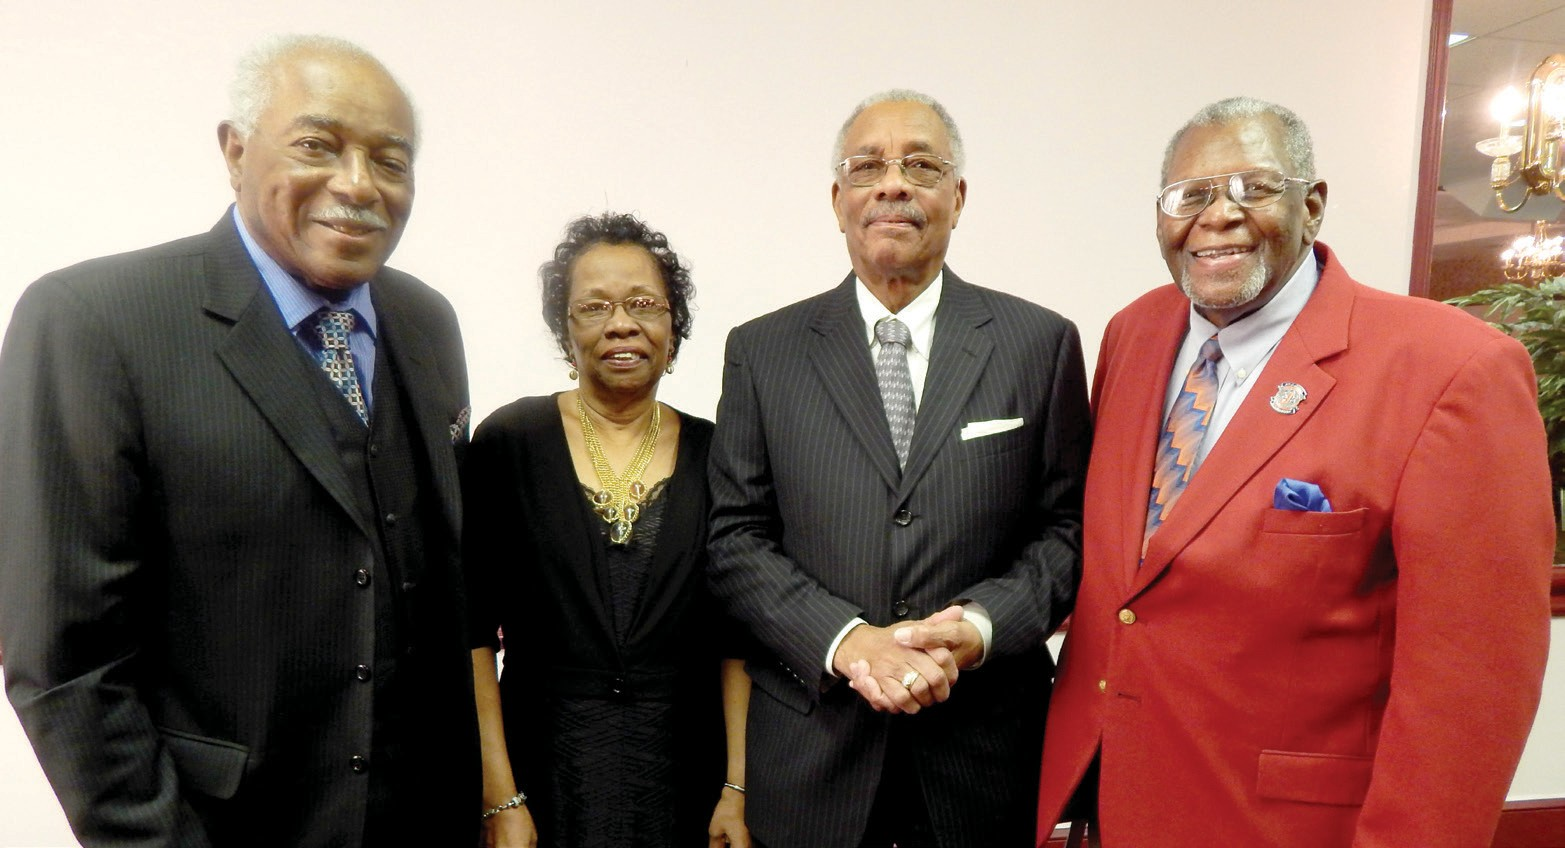 (L-R) Walter Simmons, Vergie Williams, Herman Griner (brother of Leila Young) and Floyd Morris